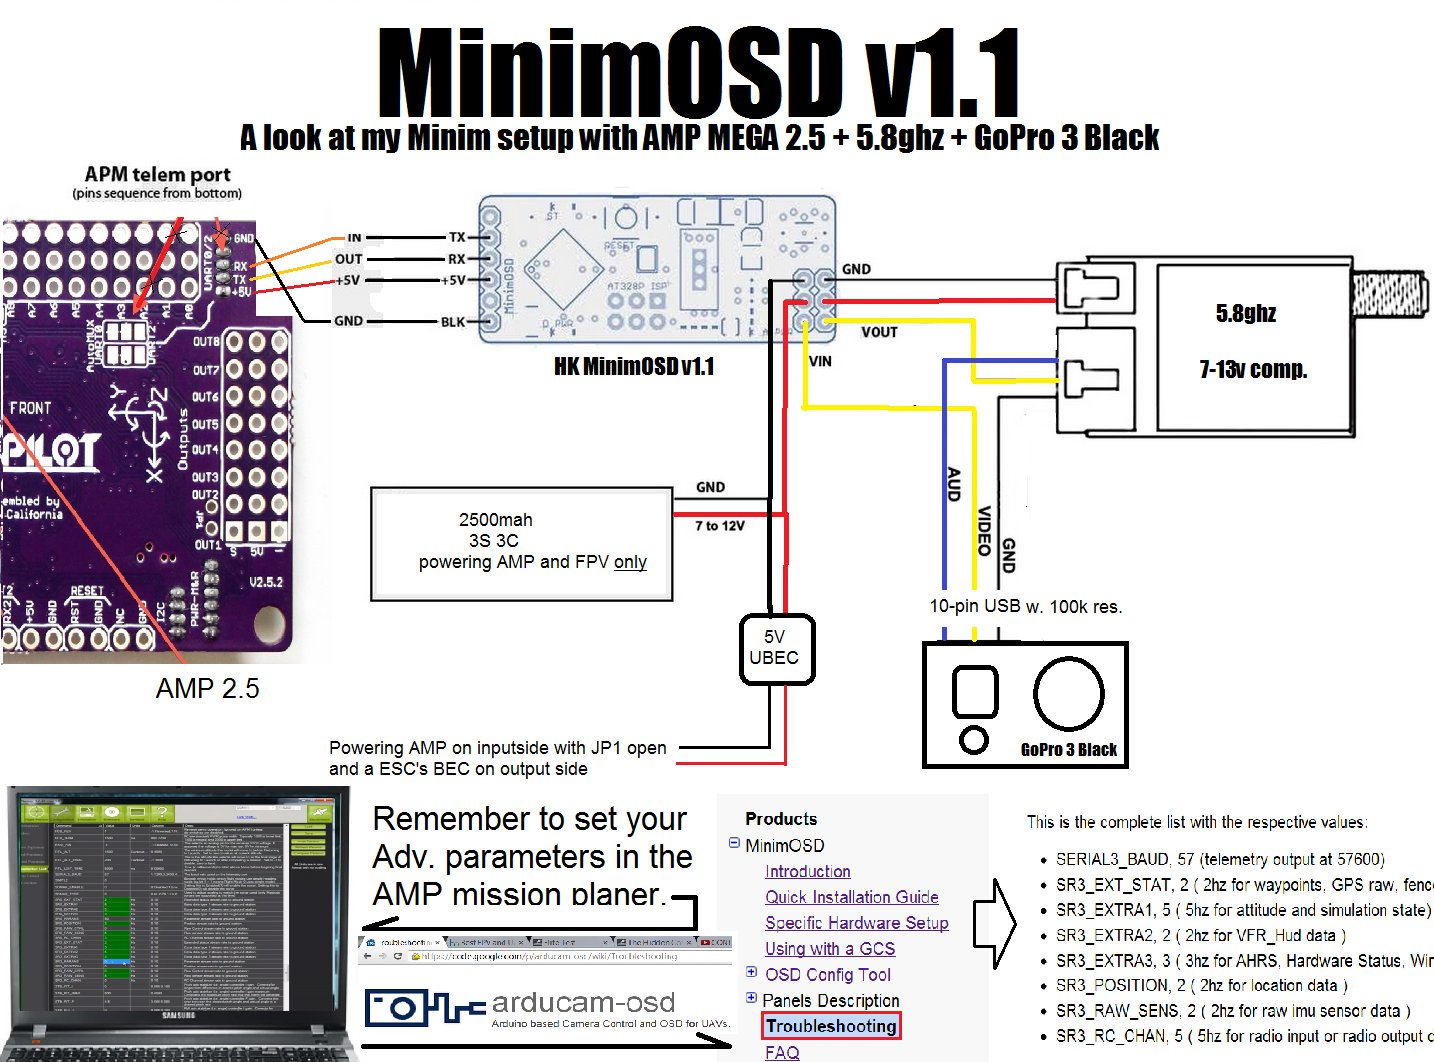 minimosd v1 1 png_1373926583 apm 2 5 minimosd v1 1 how to setup w gopro 3 b flite test 3Dr APM 2.6 Wiring-Diagram at aneh.co